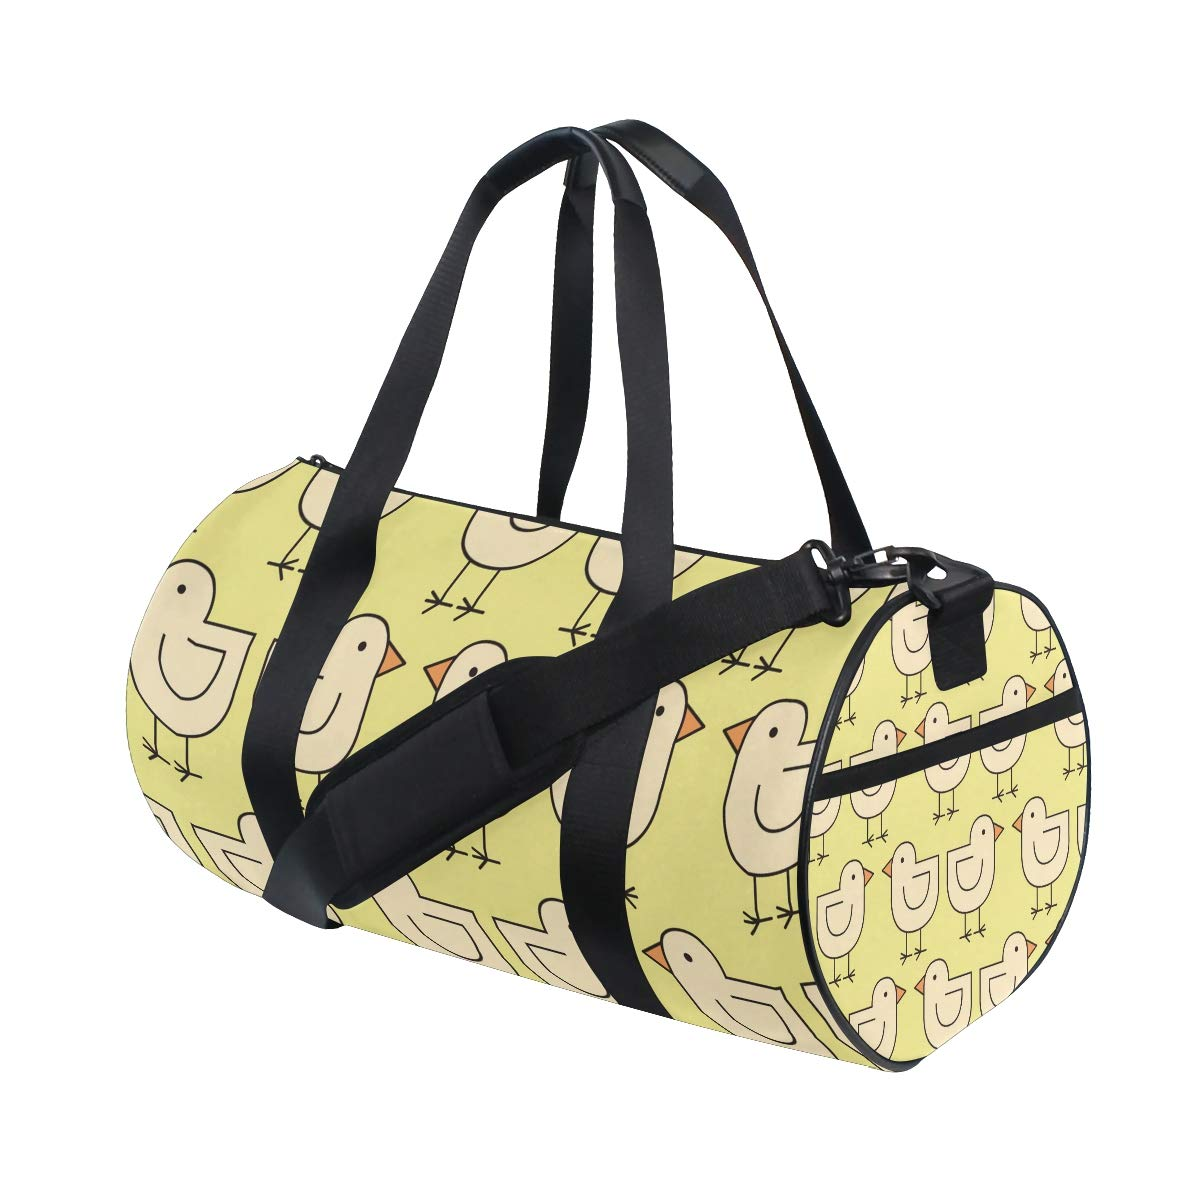 Sports Gym Duffel Barrel Bag Chick Bird Animal Yellow Travel Luggage Handbag for Men Women